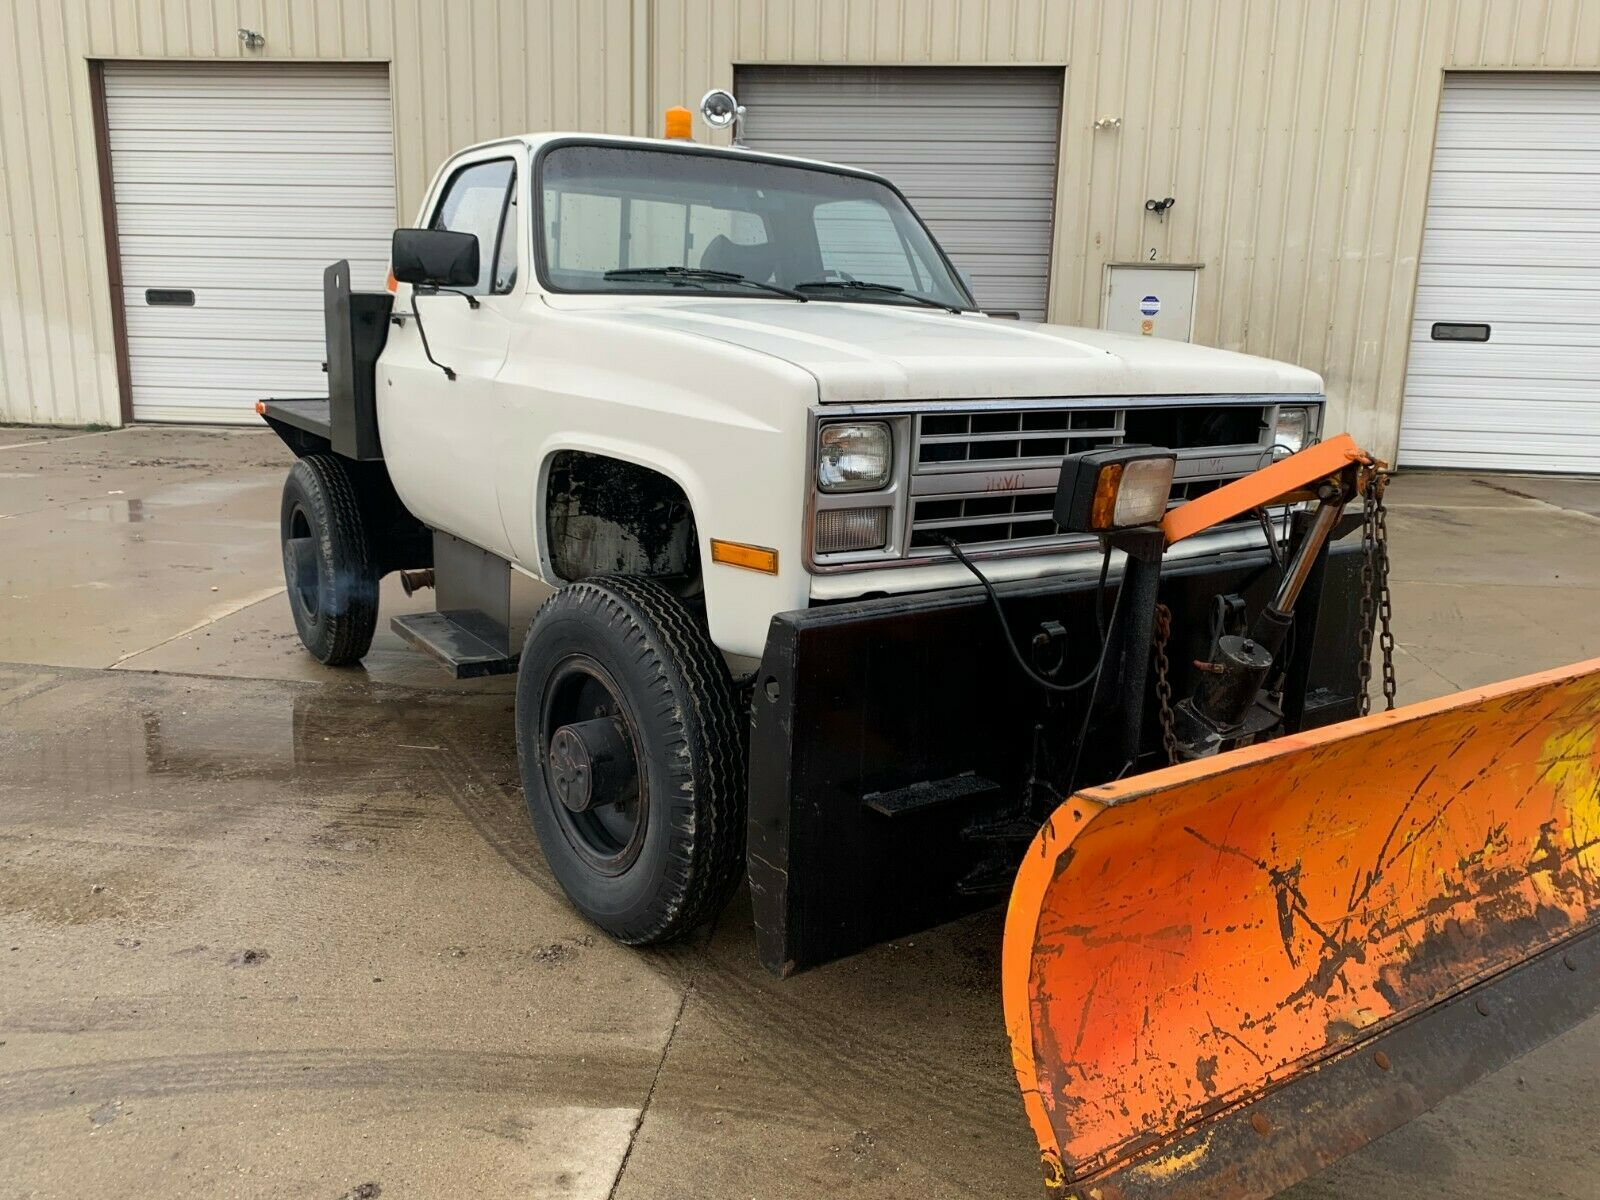 tug special 1986 Chevrolet C/K Pickup 3500 monster military for sale